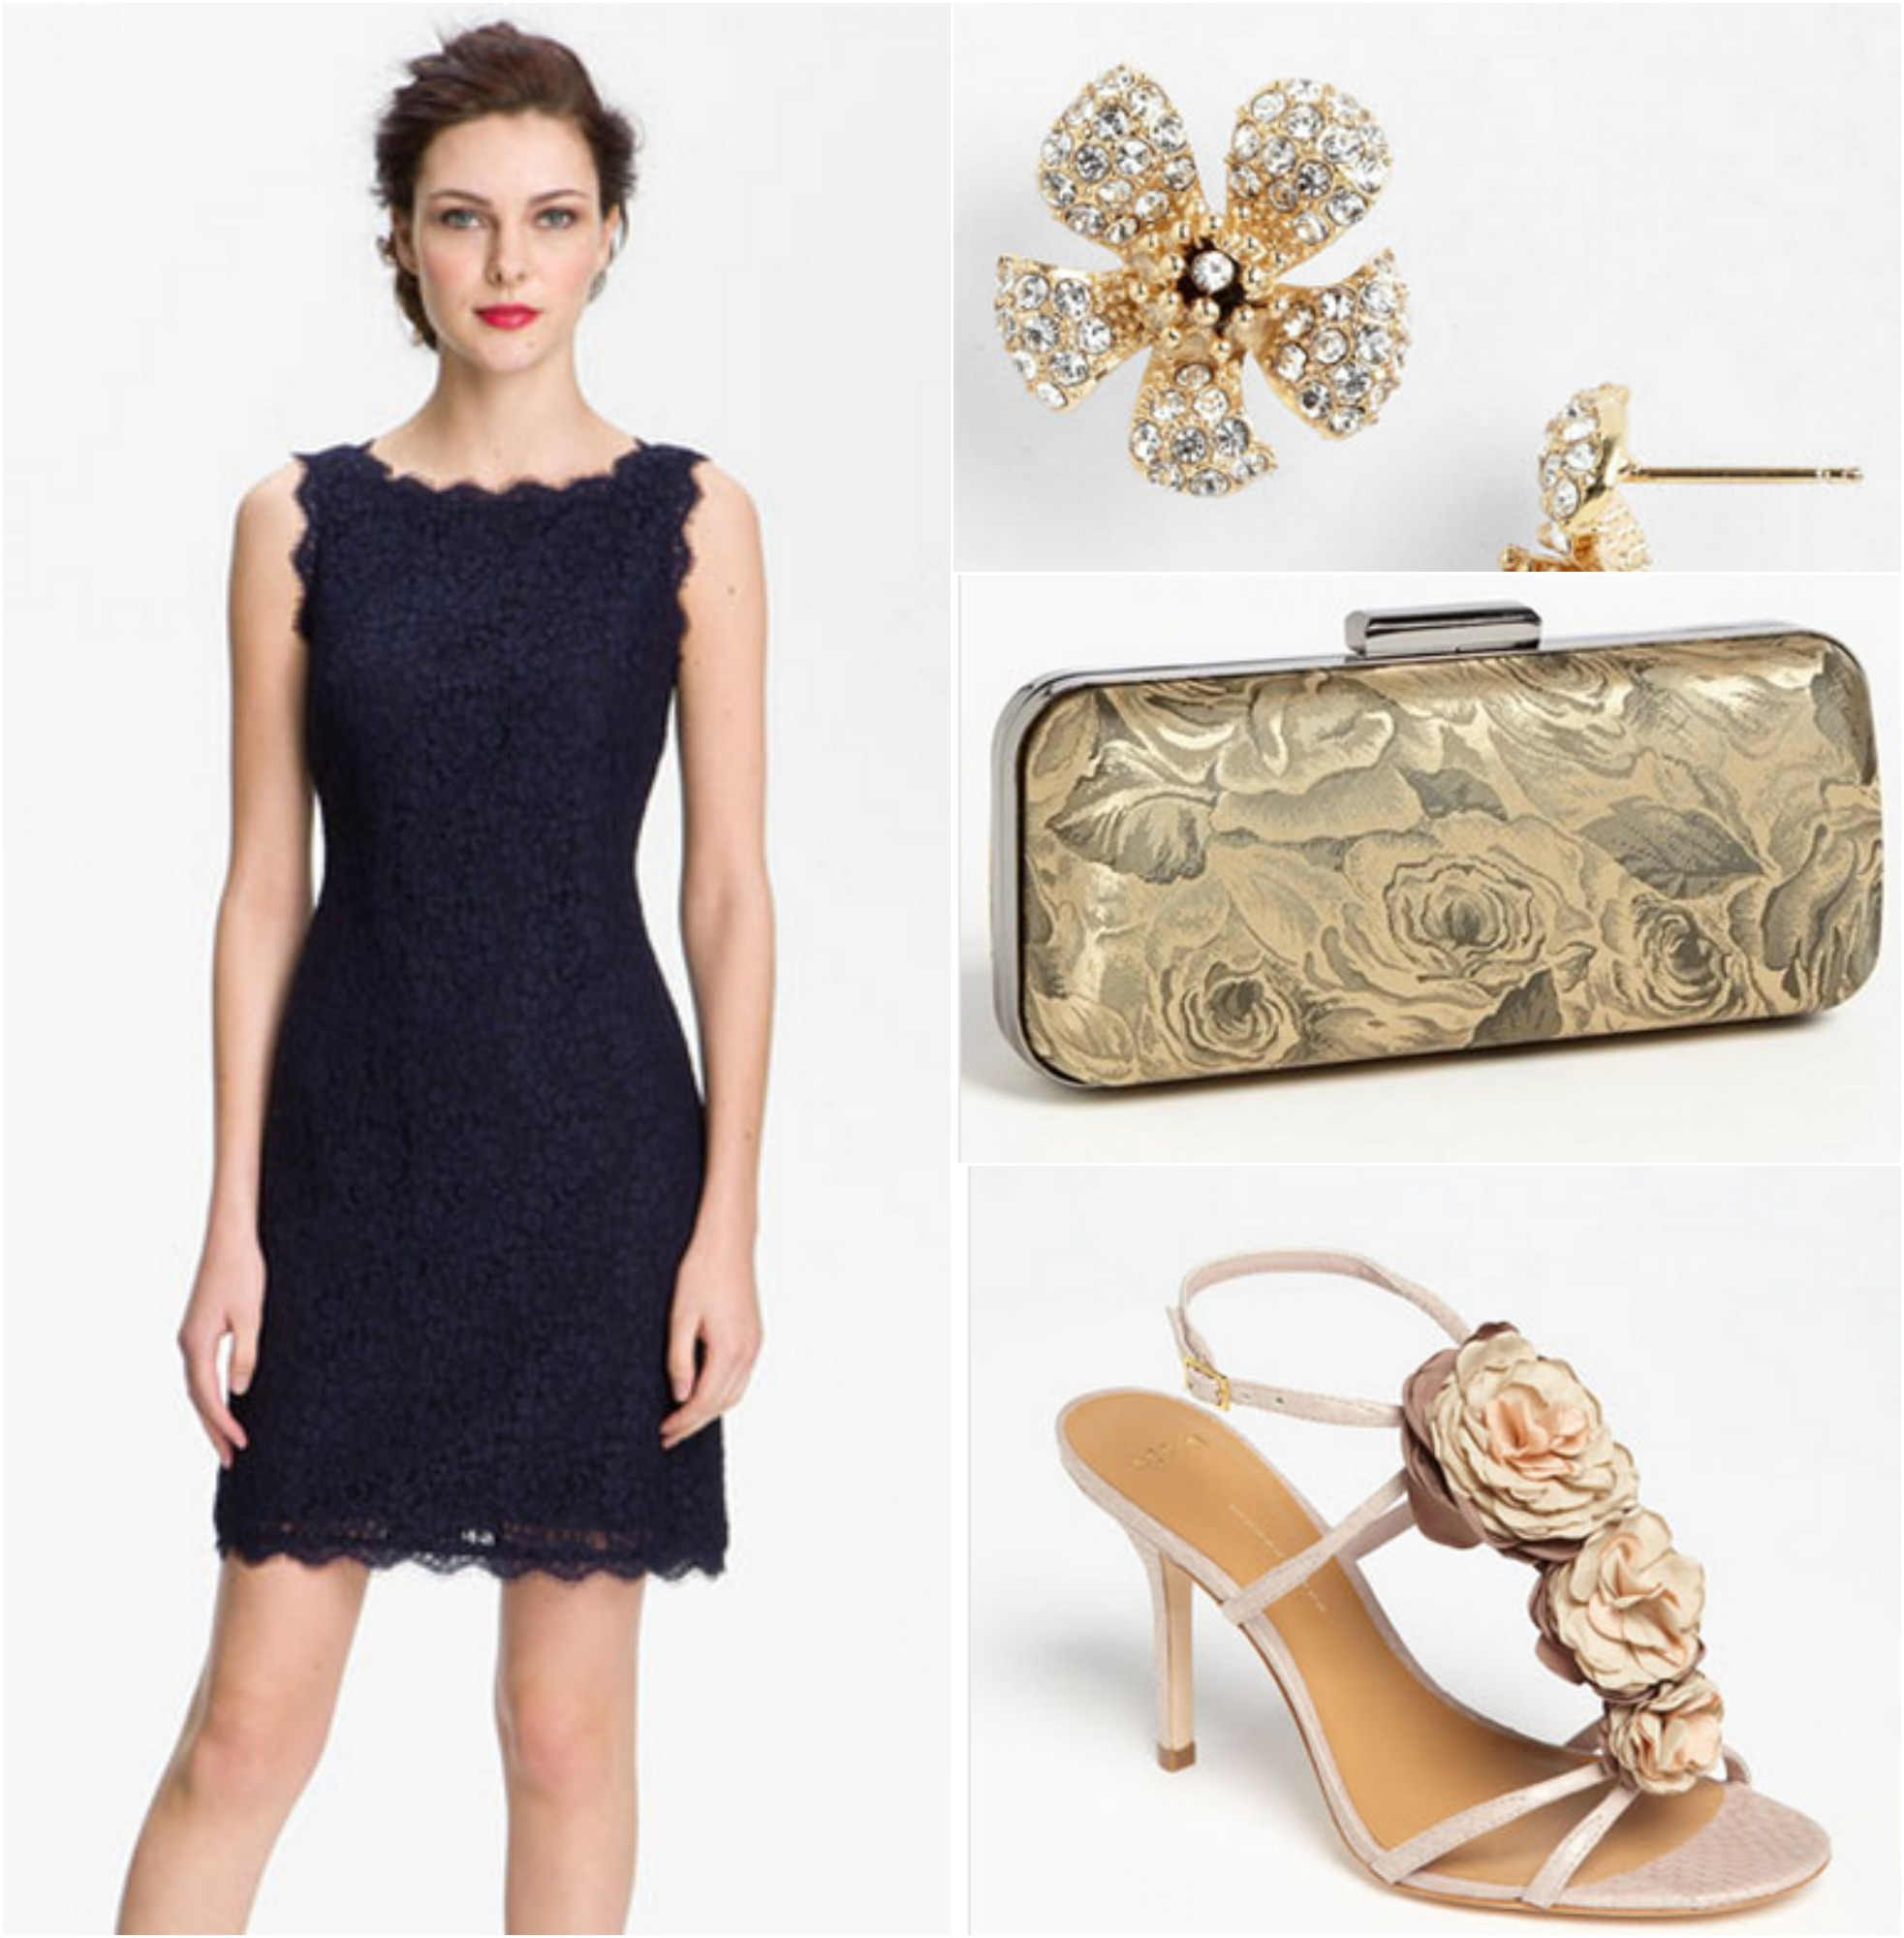 4 ways to wear a bridesmaid dress rustic wedding chic for What kind of shoes to wear with wedding dress